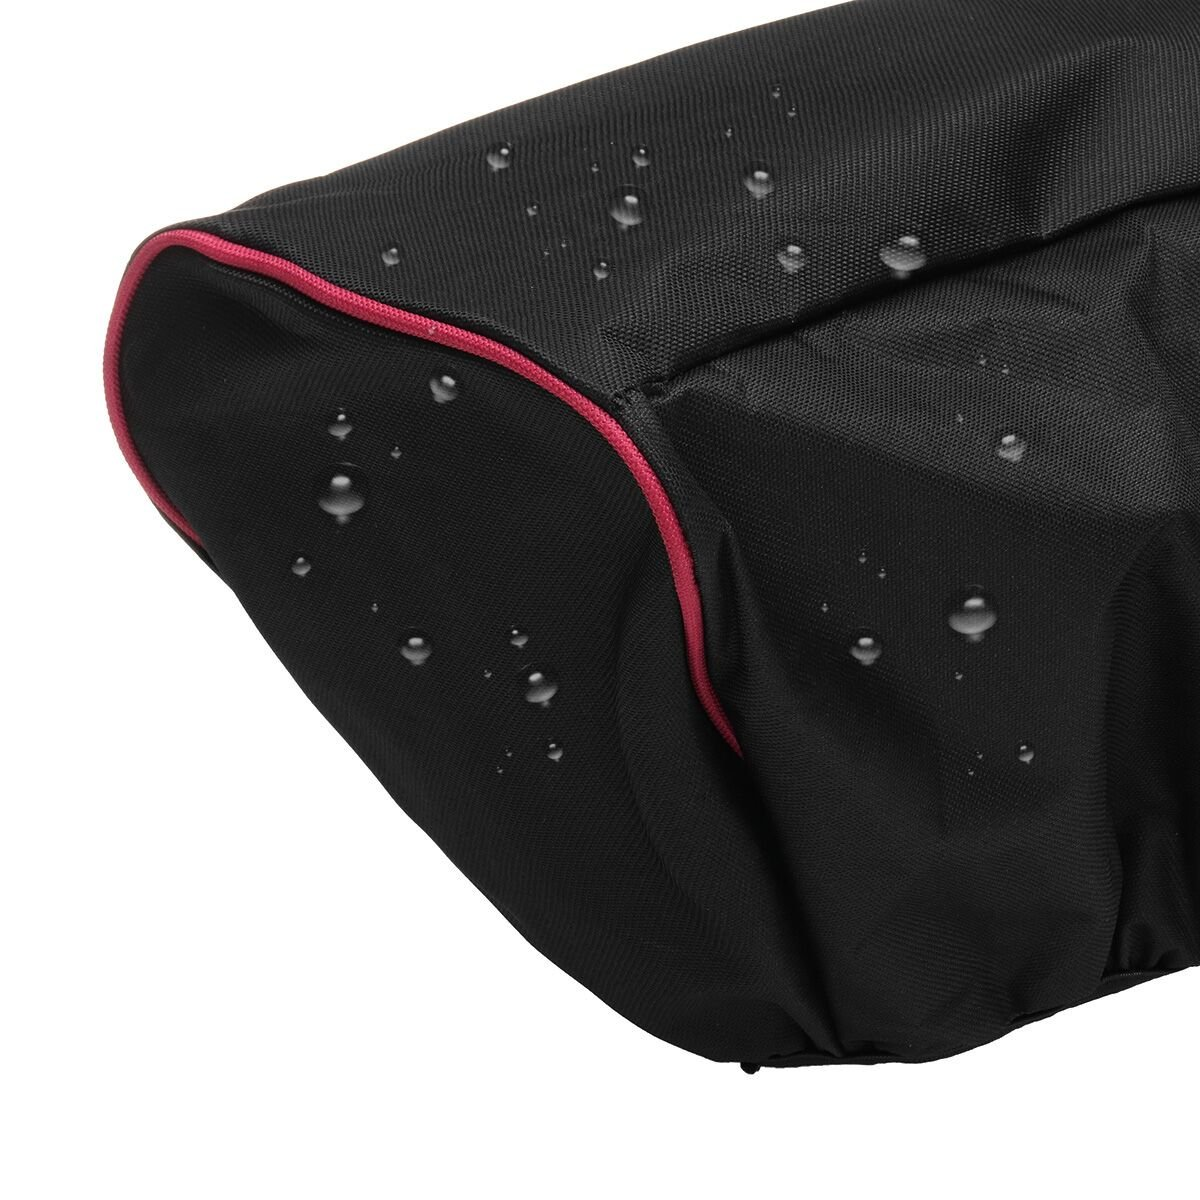 VVHOOY Waterproof Winch Cover,Winch Dust Cover,UV /& Mildew-Resistant Winch Protection Cover Driver Recovery 8500-17500 lbs Electric Winches